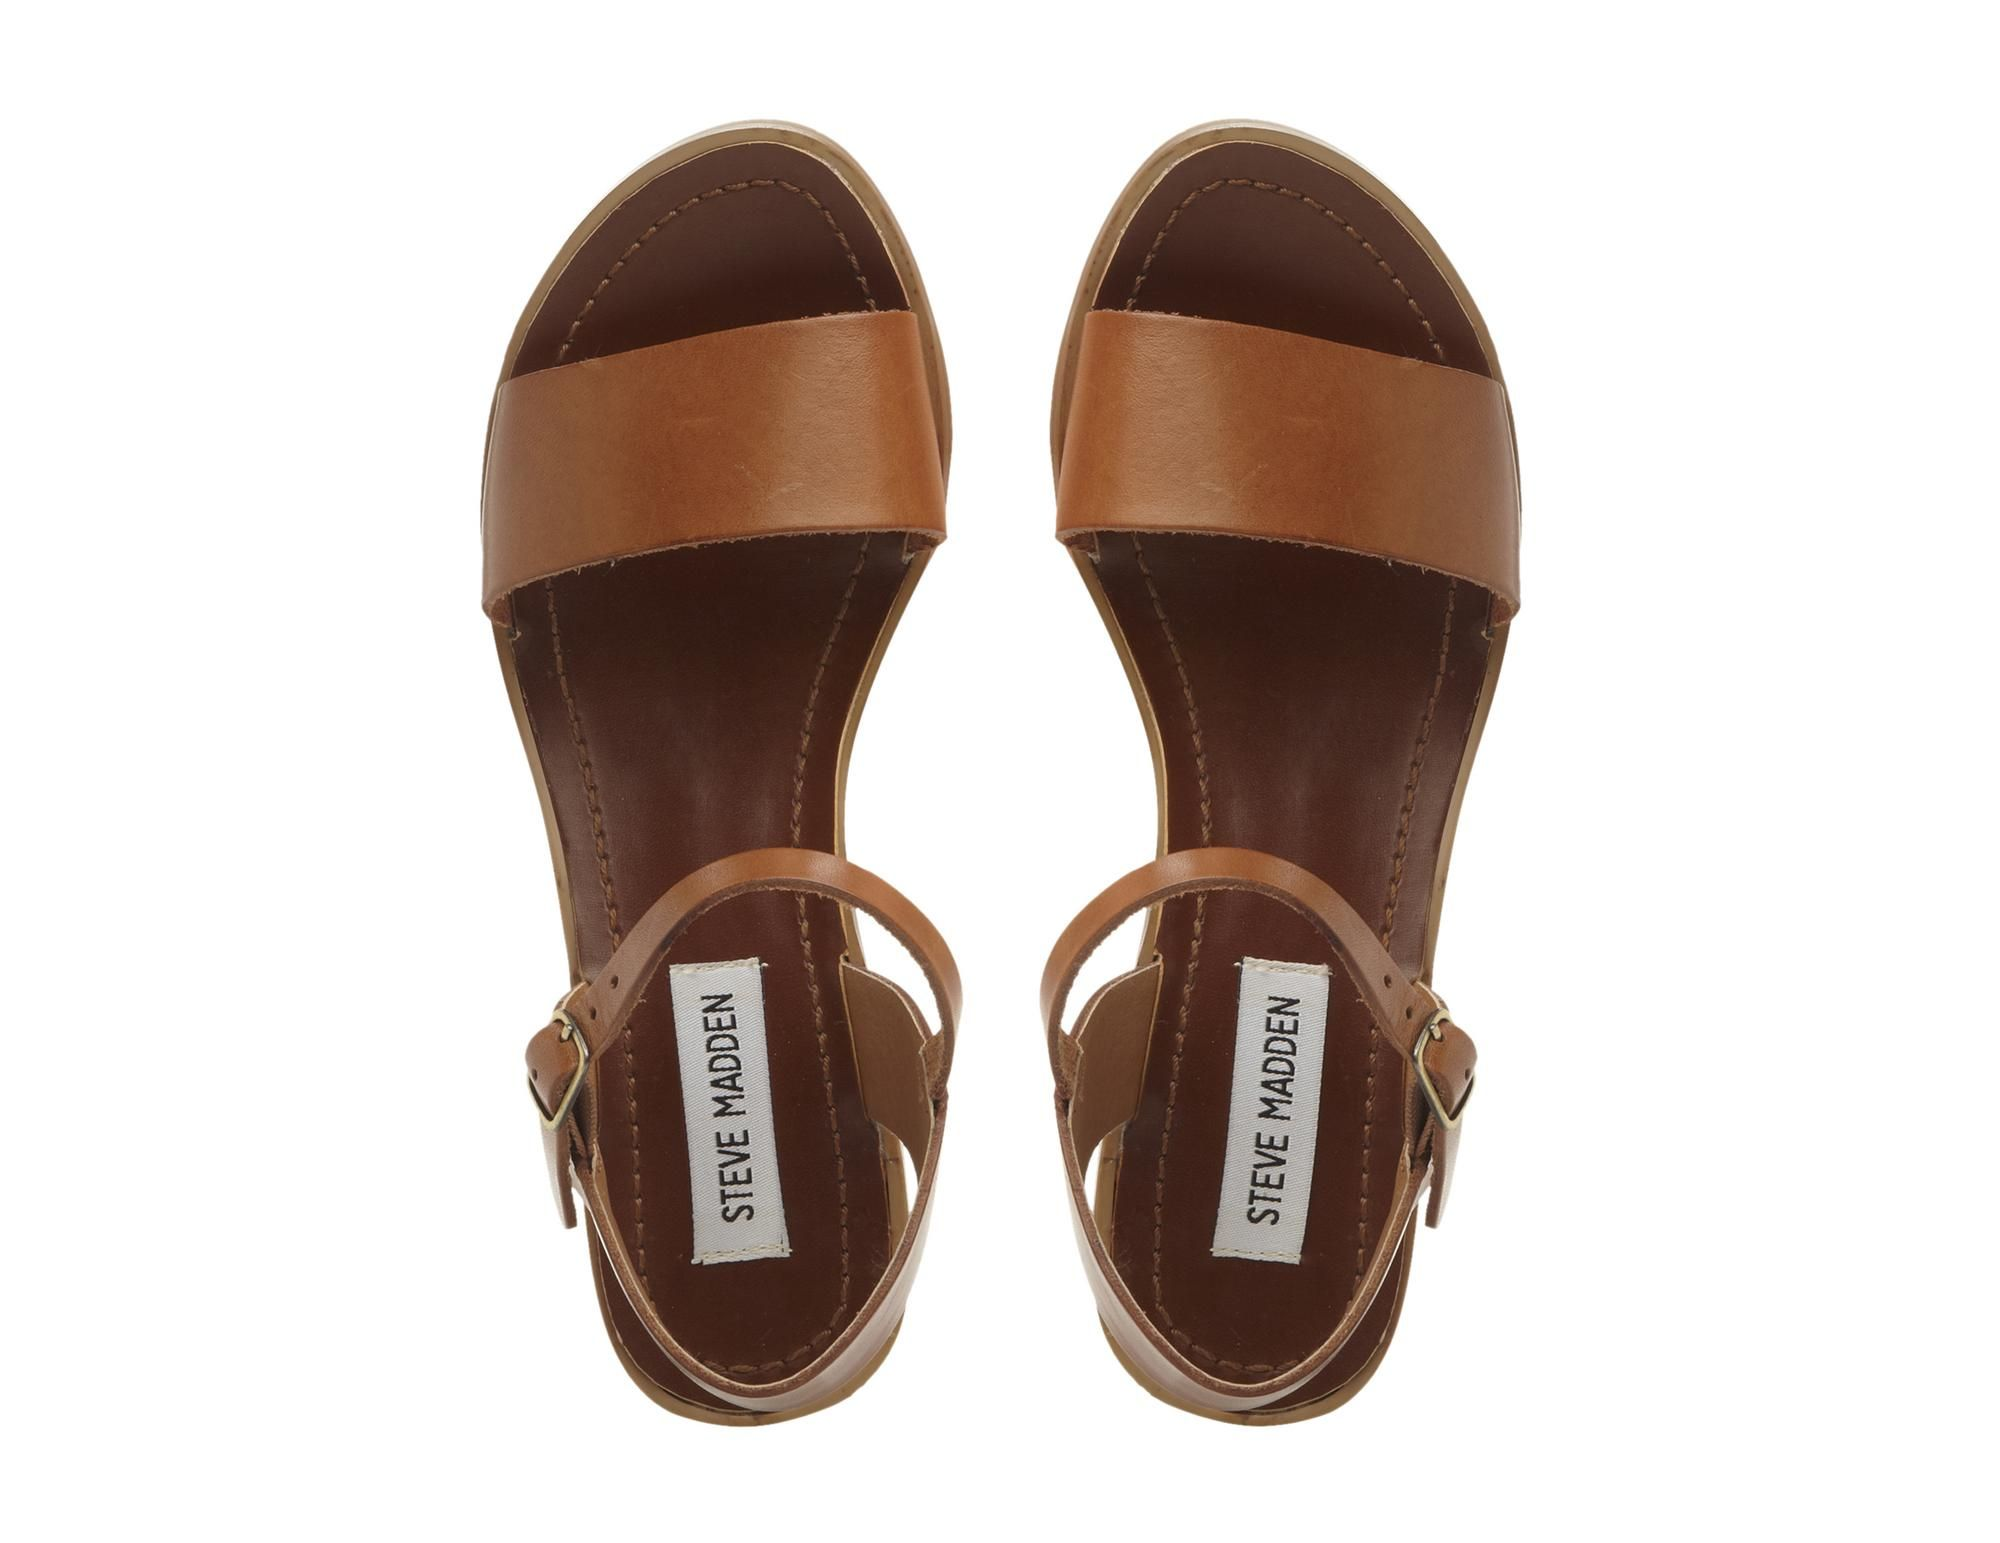 STEVE MADDEN DENSE SM - Low Block Heel Sandal - tan | Dune Shoes Online